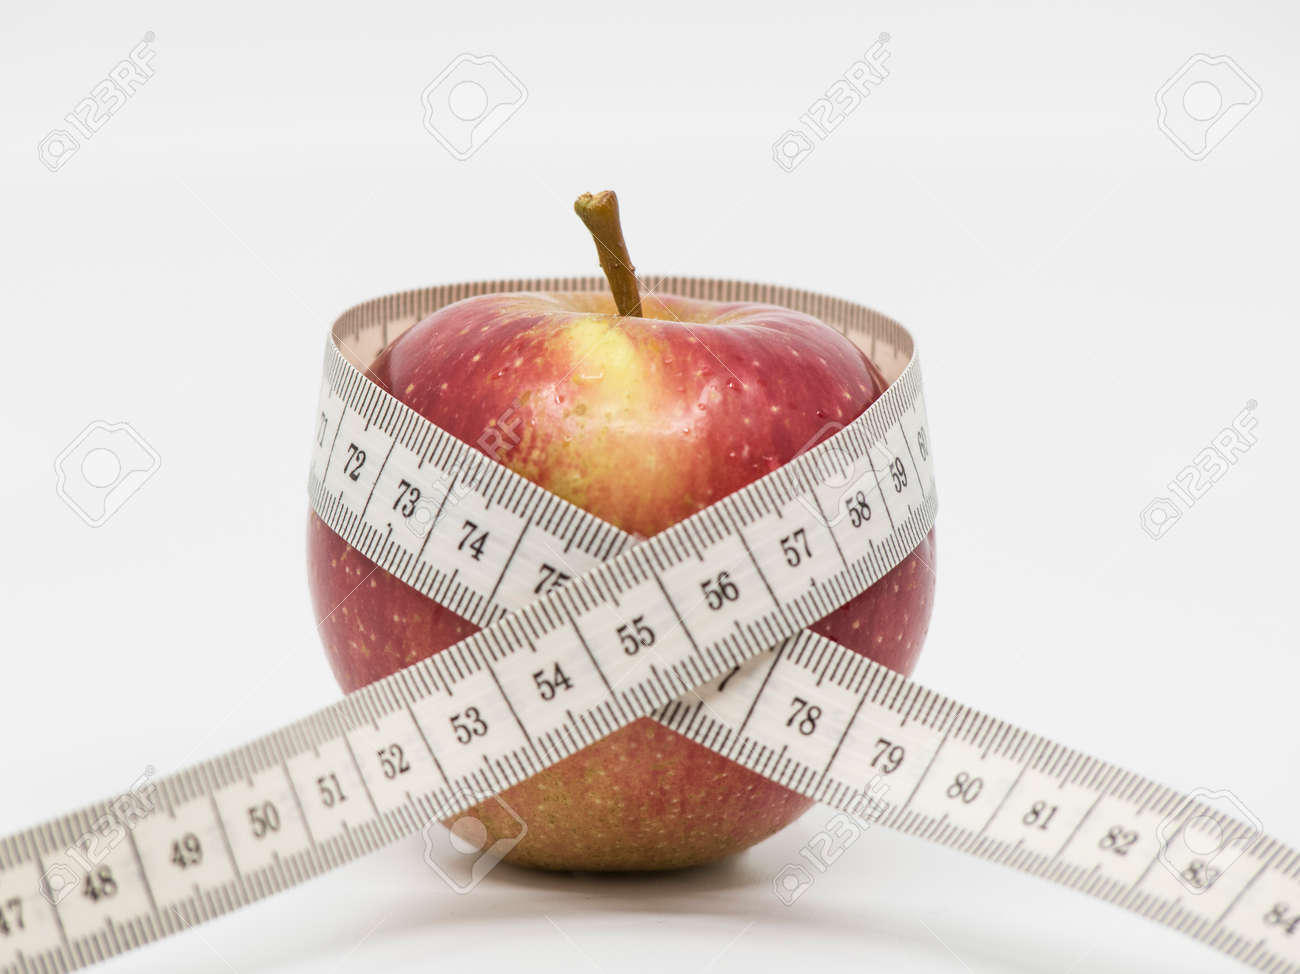 weight loss and diet, balanced nutrition and a healthy lifestyle - 164134682